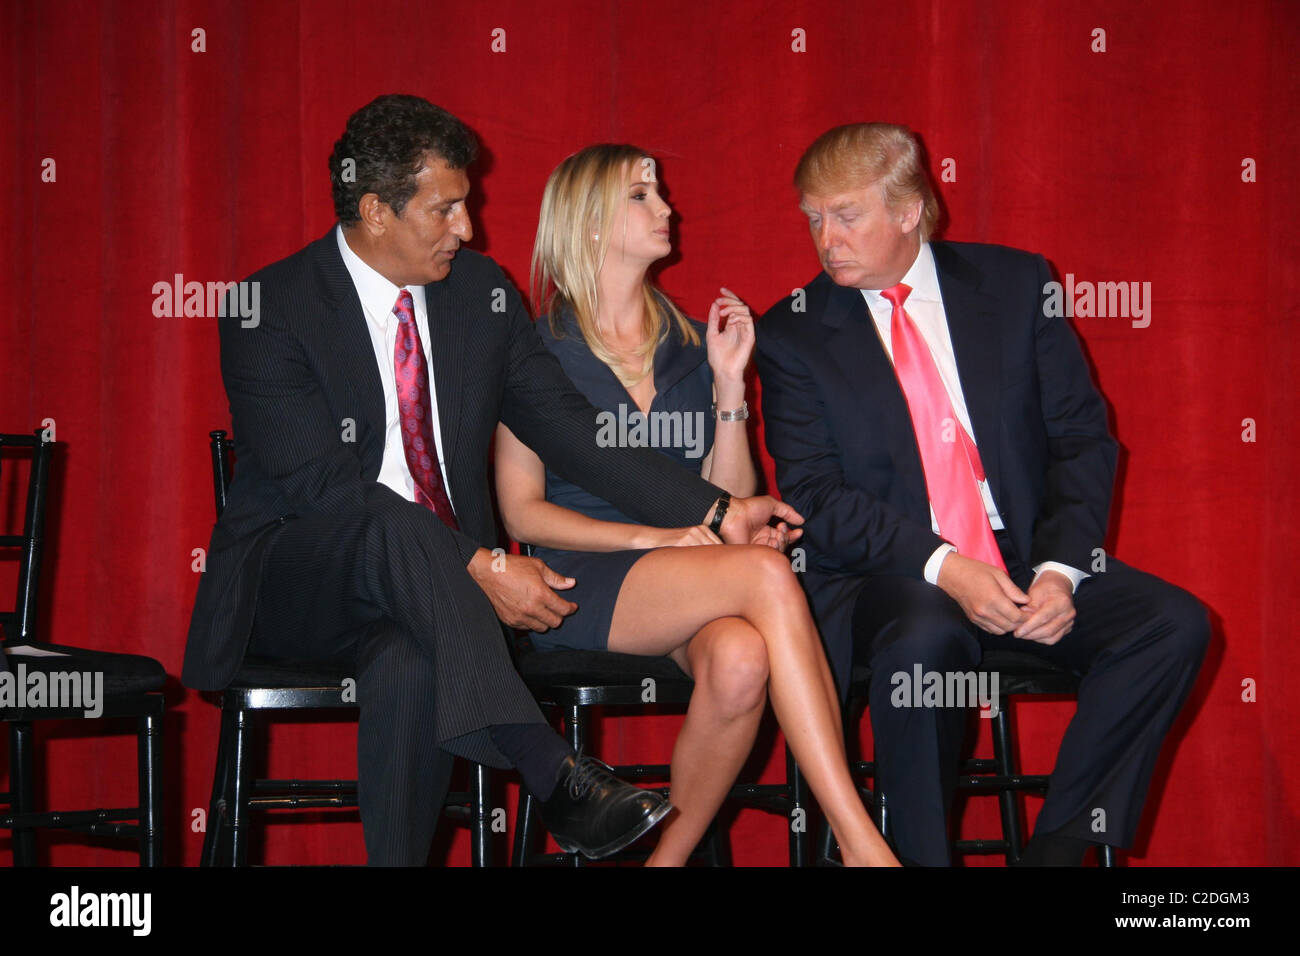 The Founder And Chairman Of Bayrock Group Tevik Arif Ivanka Trump Donald Announces Launch